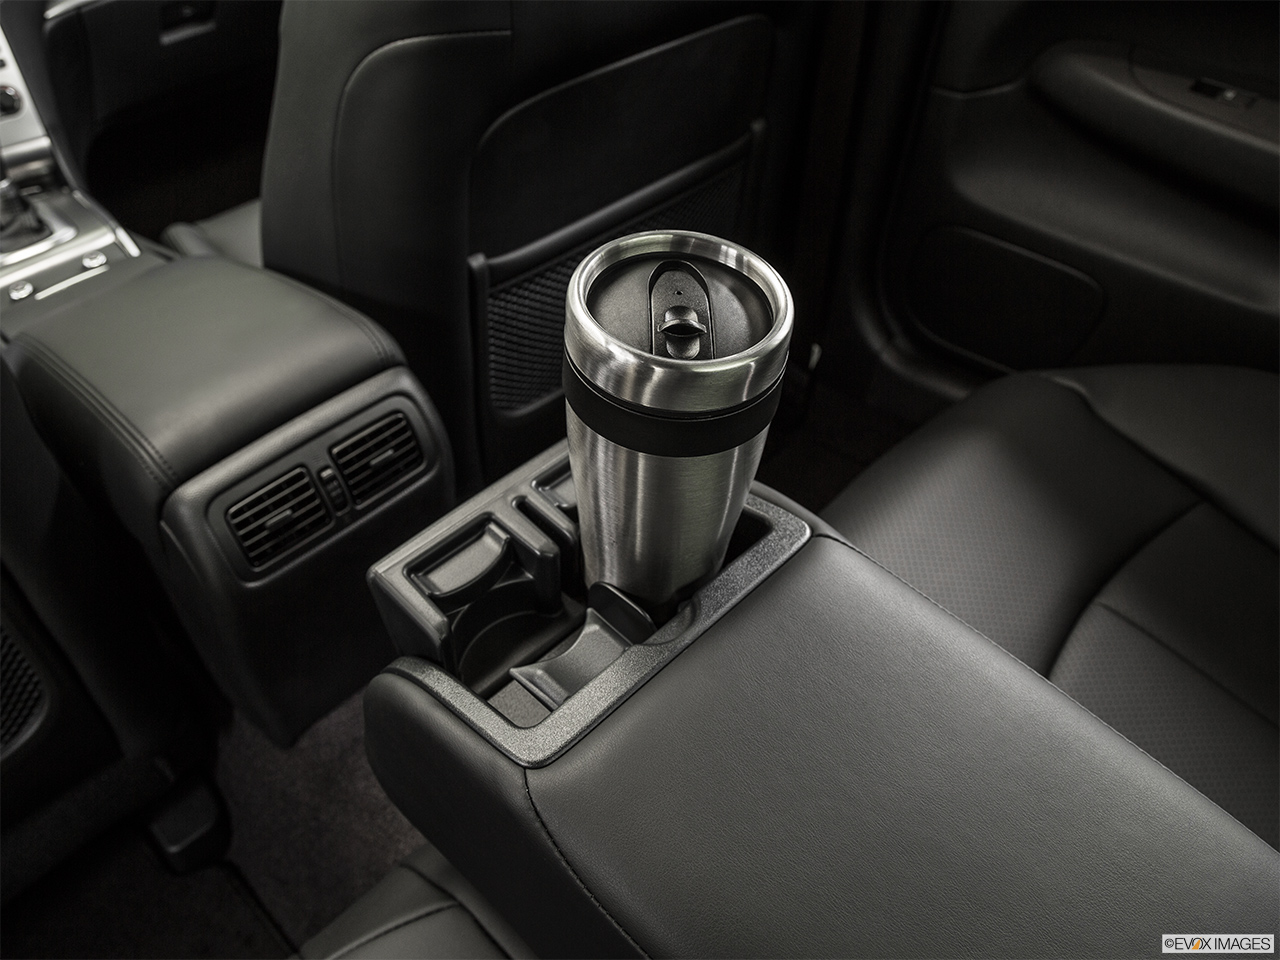 2015 Infiniti Q40 Base Cup holder prop (quaternary).